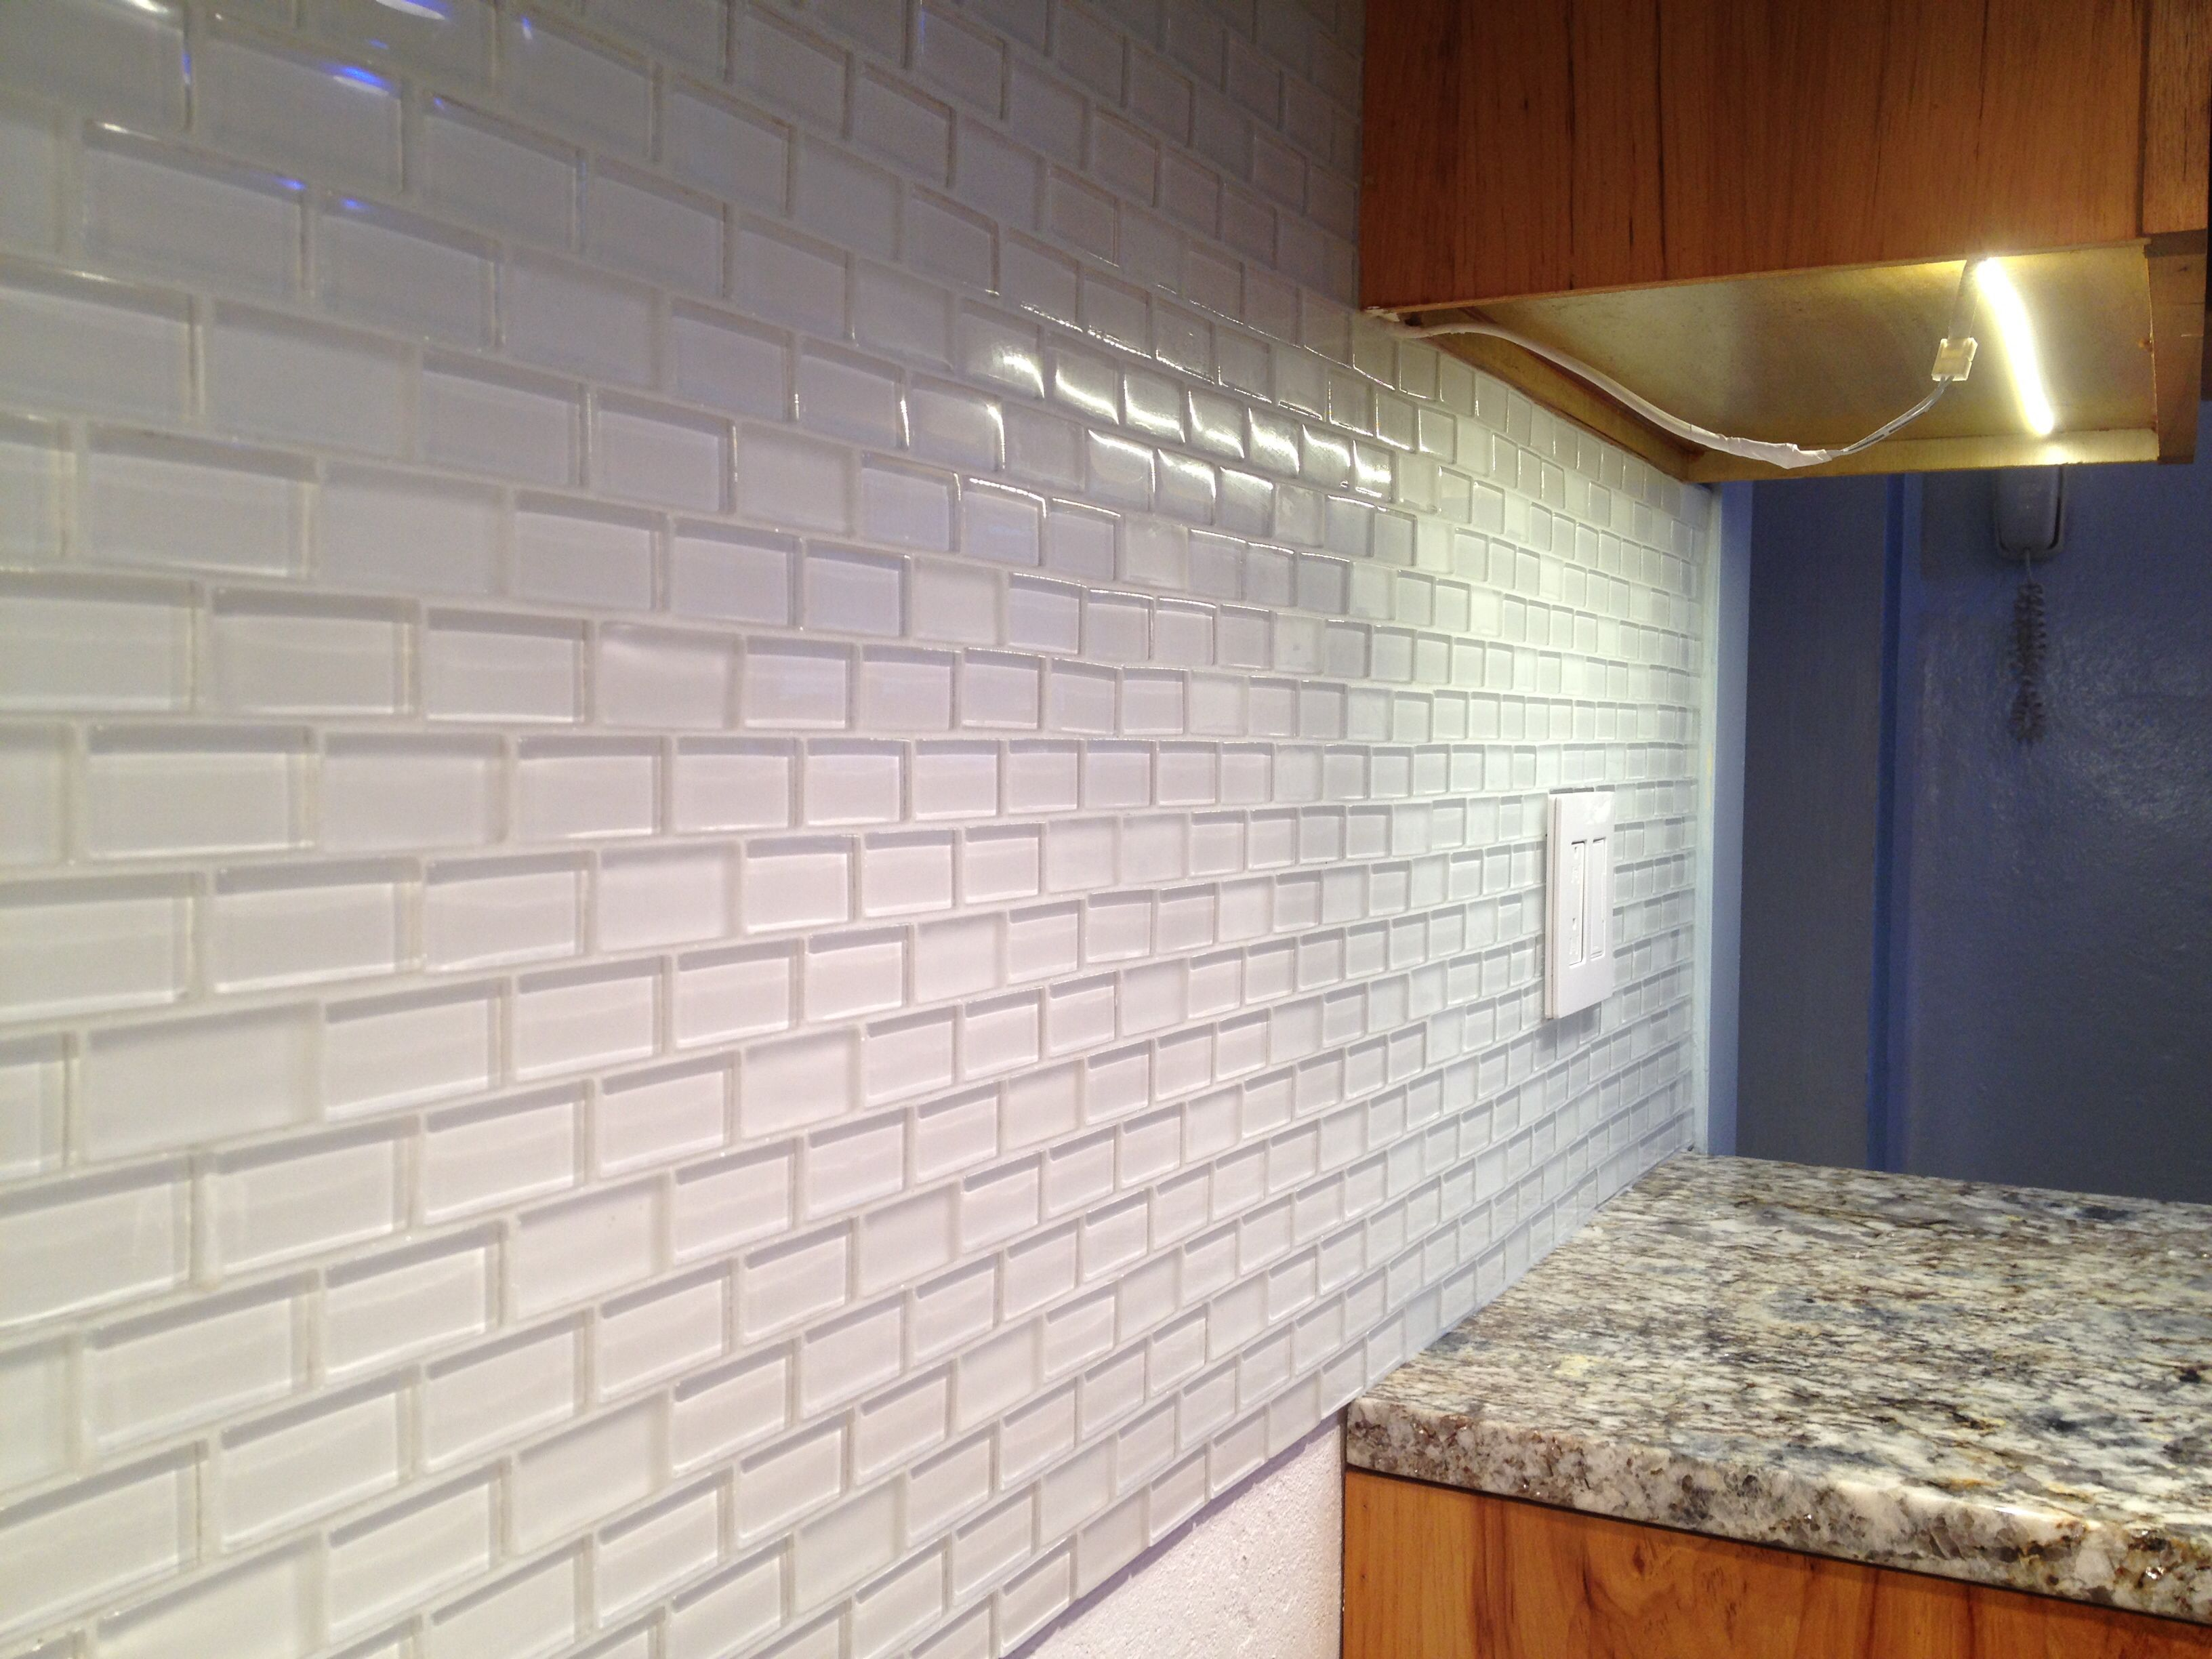 1x2 Glass Tile By Pure In Snow Brick Mix Color Set With Laticrete Glass Tile Adhesive Grouted With Bostik R Glass Tile Backsplash Tile Backsplash Glass Tile